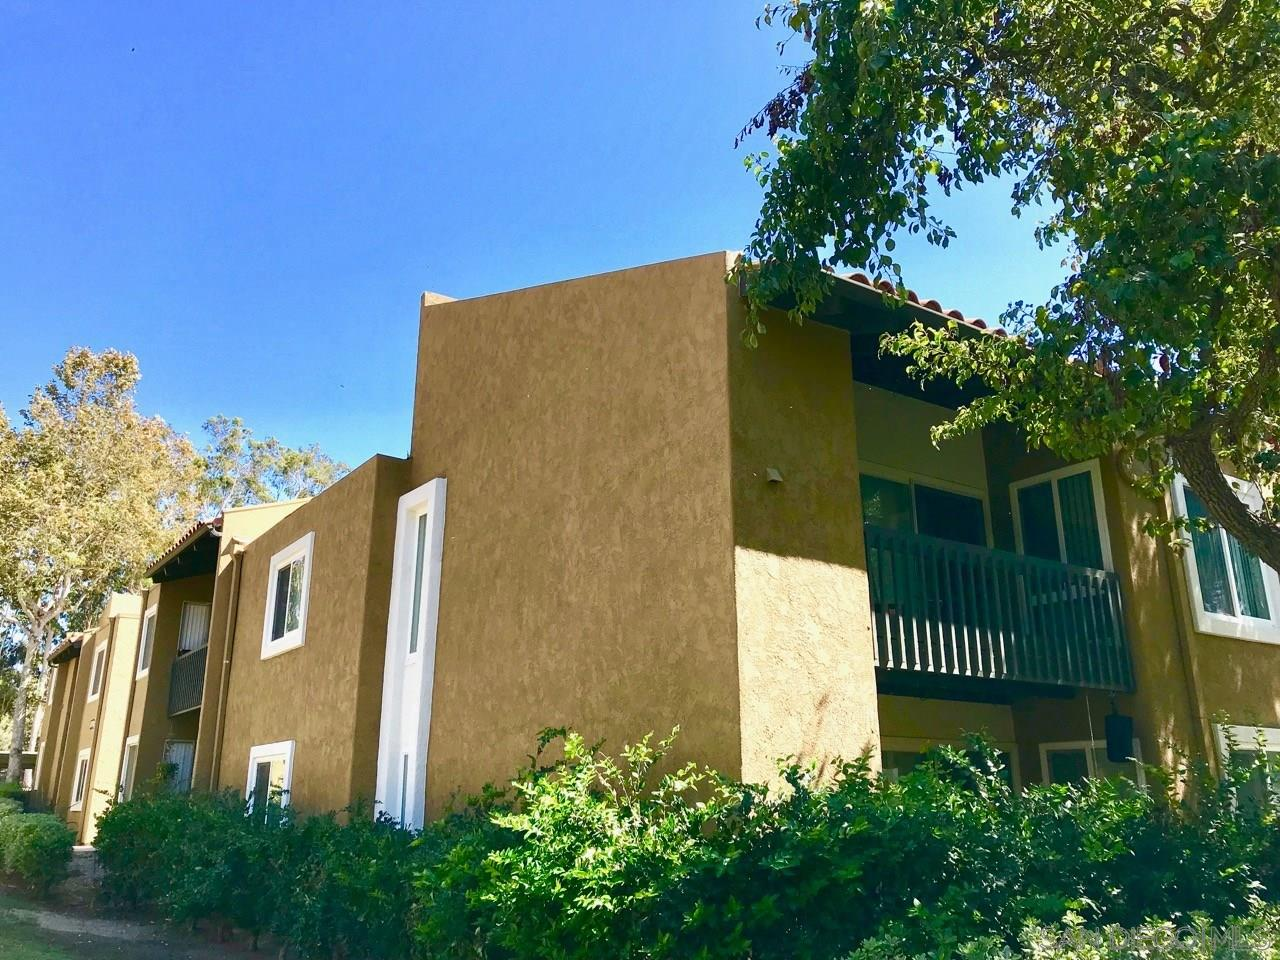 3 Br/2 Ba 1040SF Upper Unit Rancho Bernardo Condo Located in Waterbridge, Close To Playground And Pool, 2 Assigned Parking Spaces, A/C, All Appliances, Stackable Washer/Dryer, Complex Amenities, Water, Sewer And Trash HOA Provided. Community Pool. Amenities • Club House • Fitness Center • Playground • Community Pool/Spa